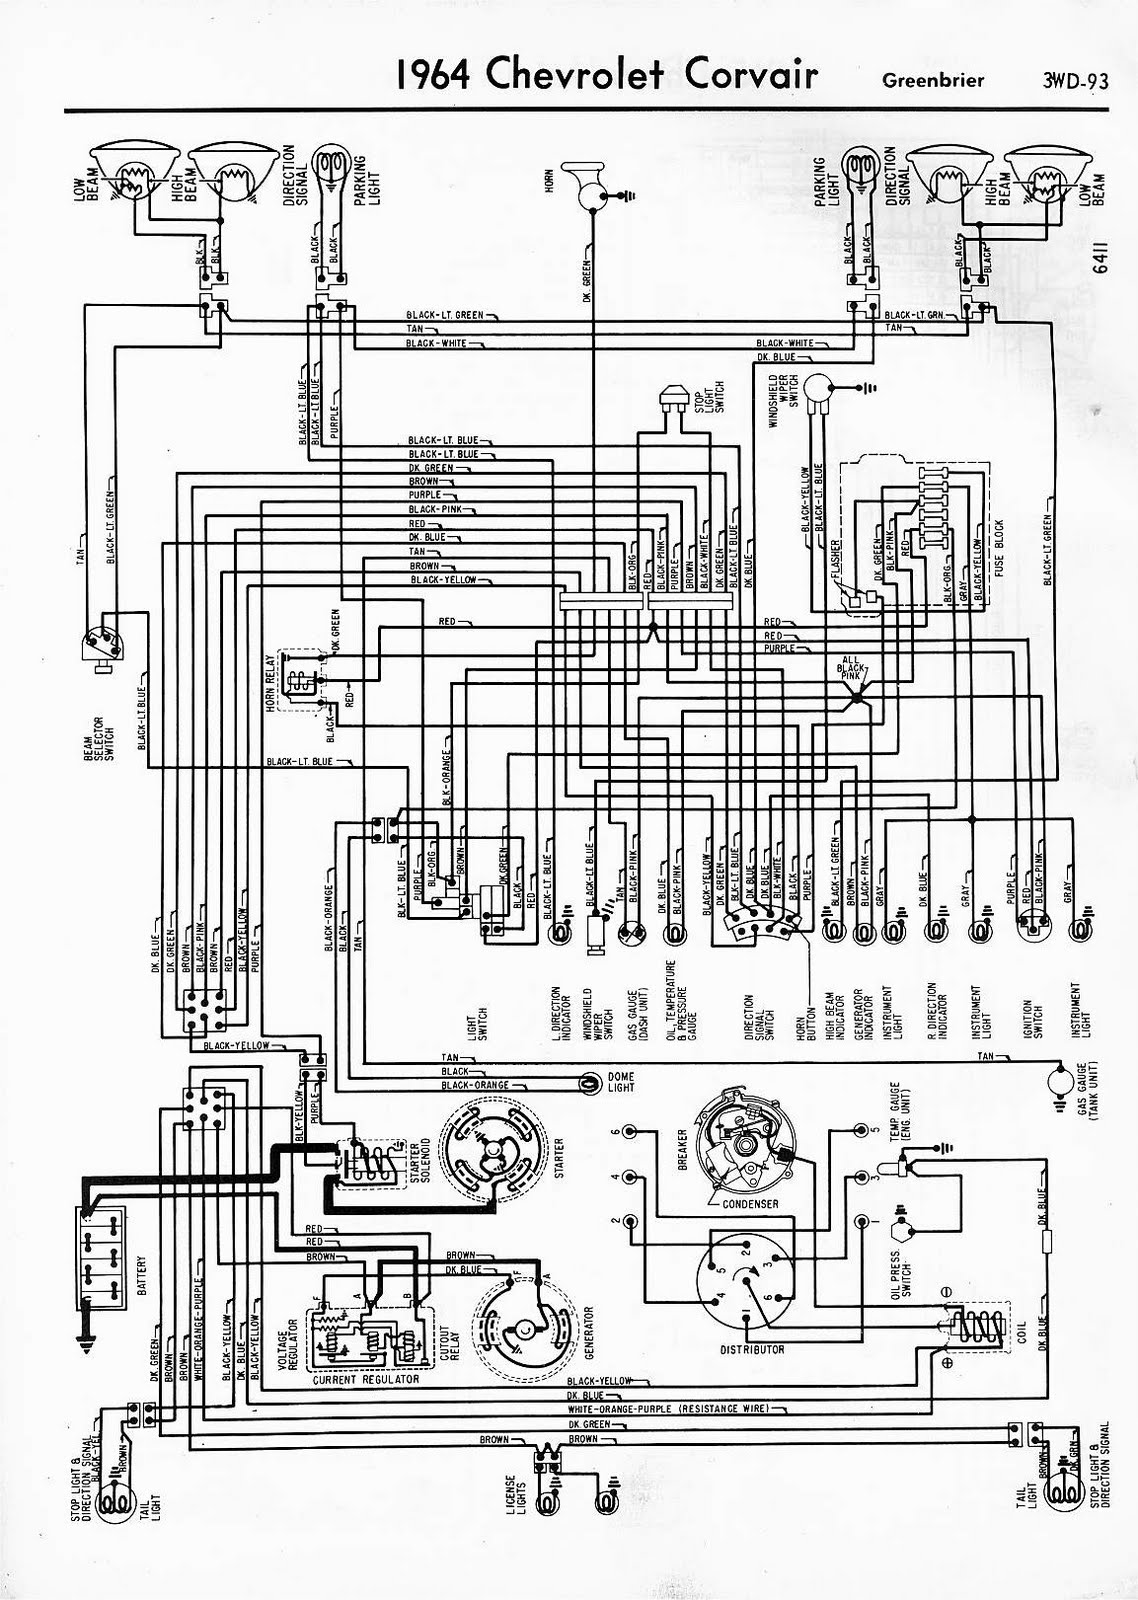 1964%2BChevrolet%2BCorvair%2BGreenbrier%2BWiring%2BDiagram free auto wiring diagram 1964 chevrolet corvair greenbrier wiring auto wiring diagram at gsmx.co